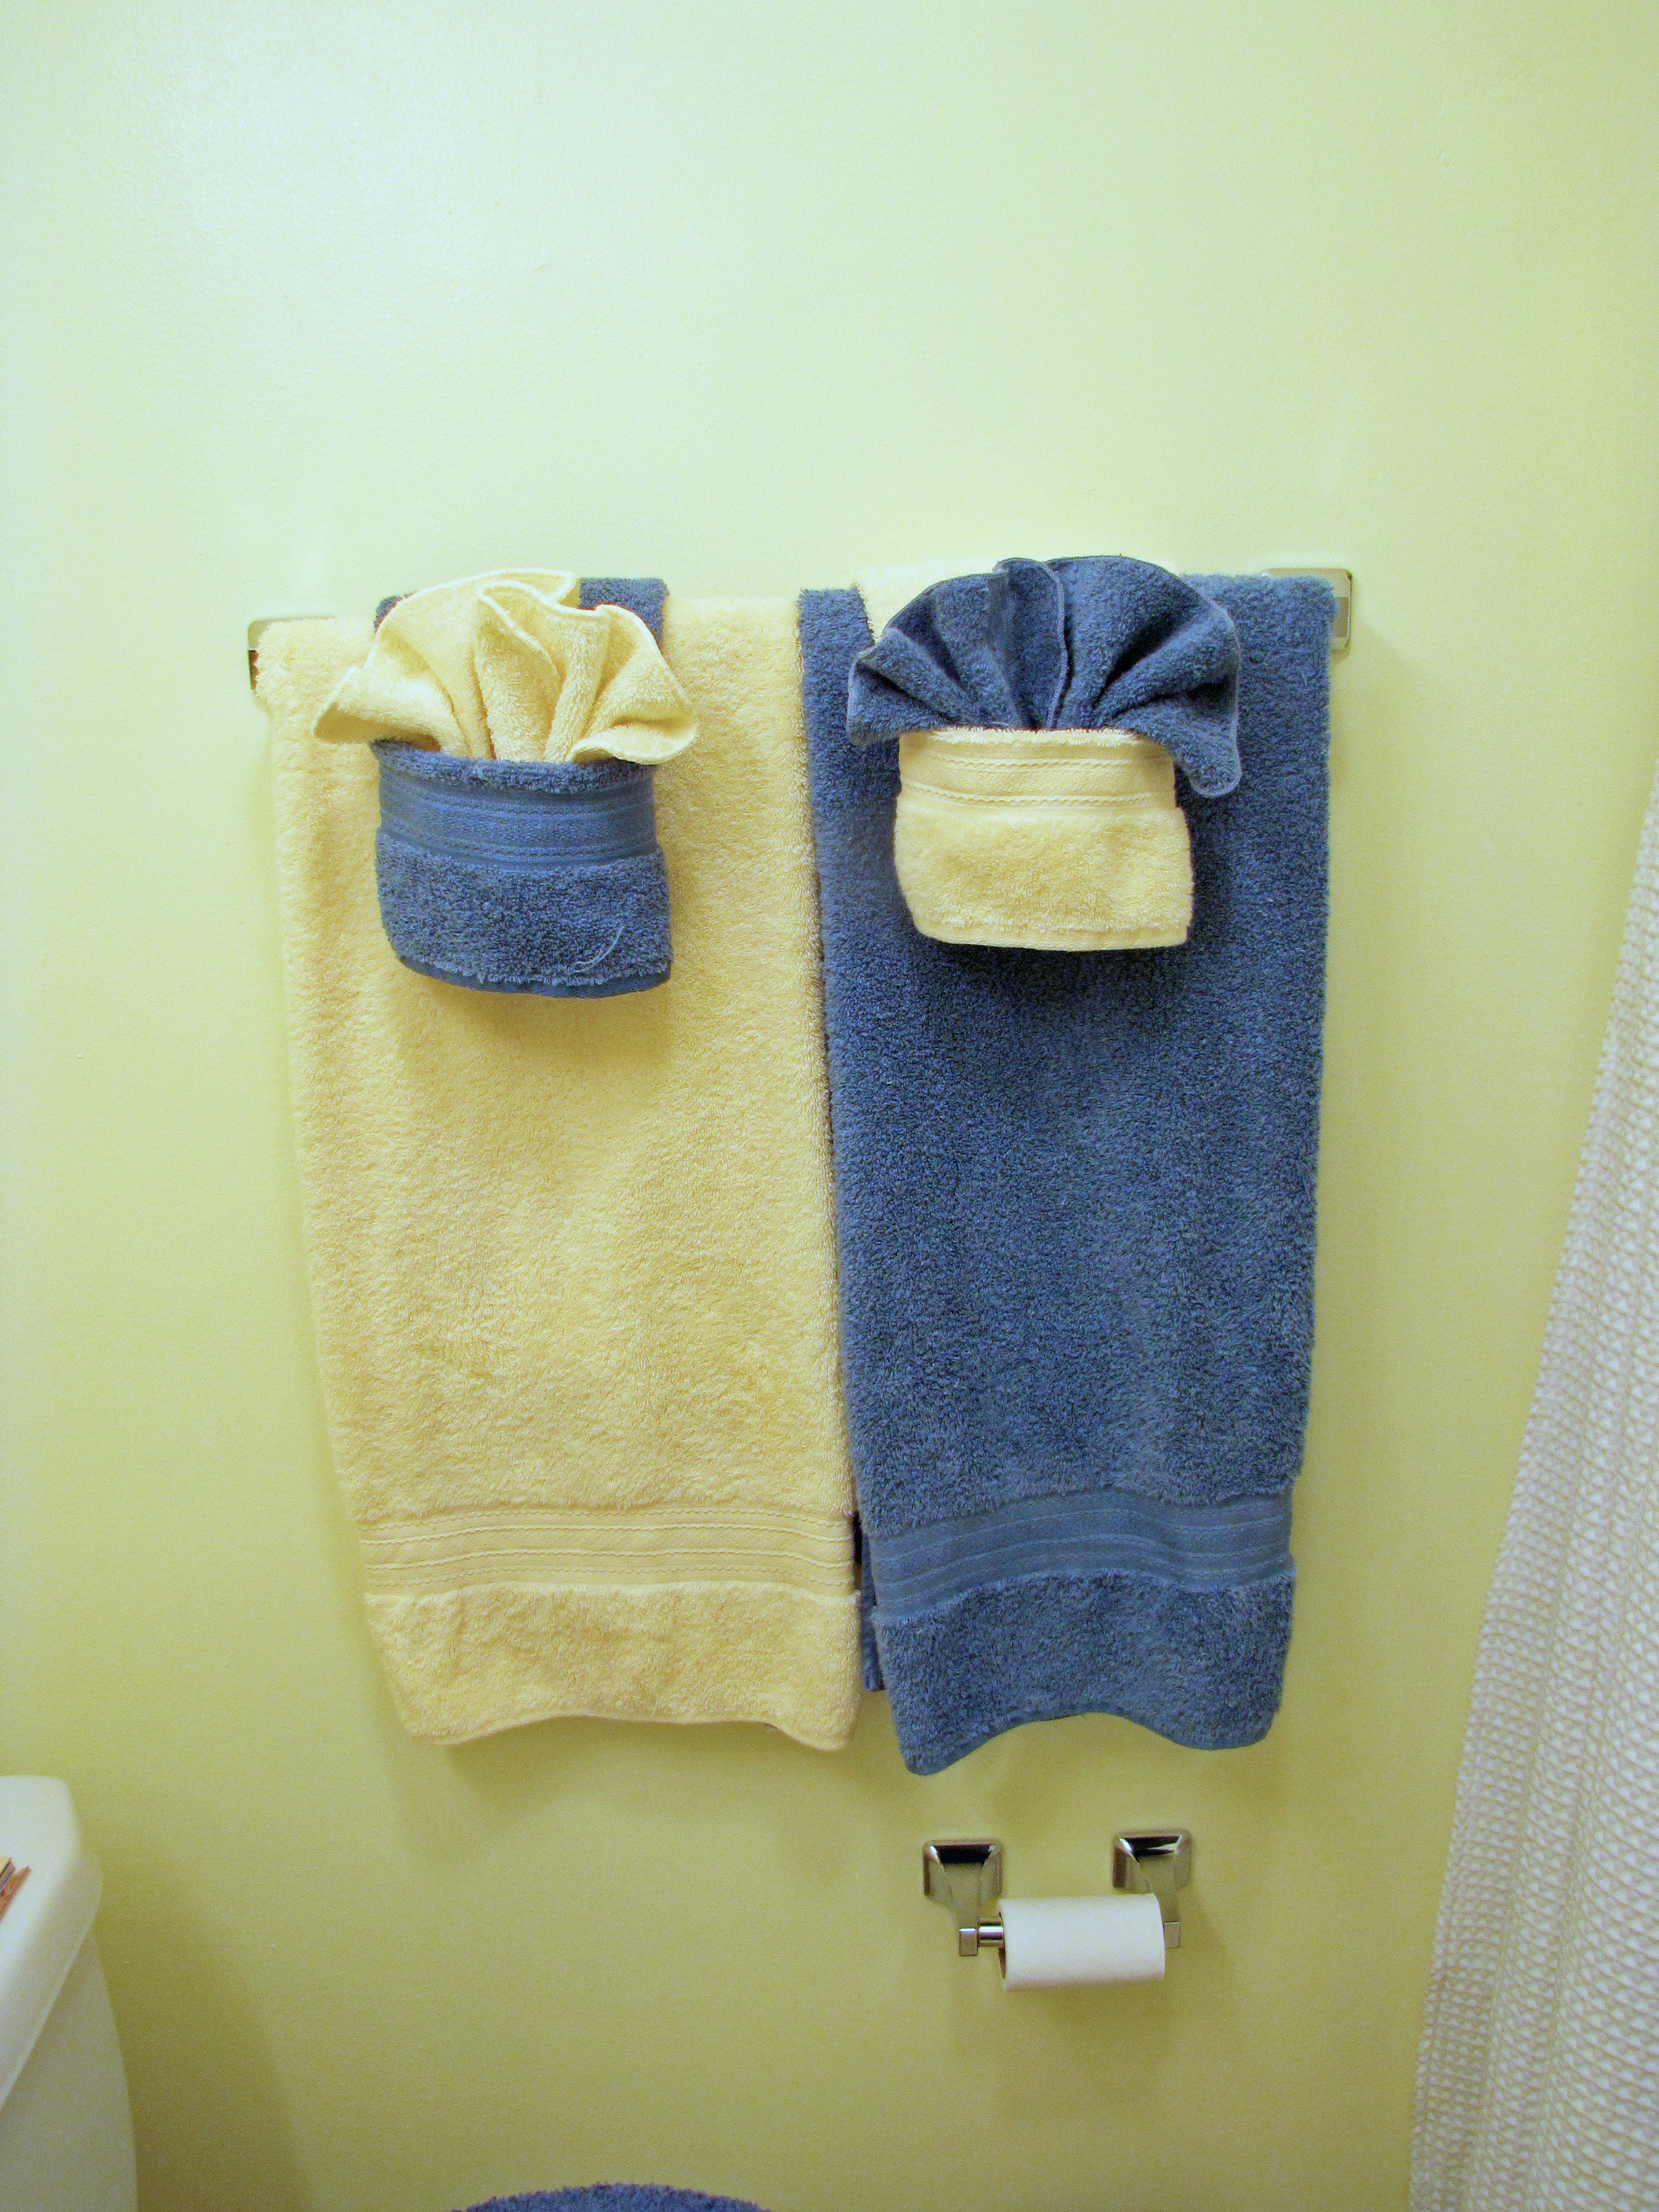 Towels Bathroom Towel Hanging Ideas Display Most Creative Folding Best Free Home Design